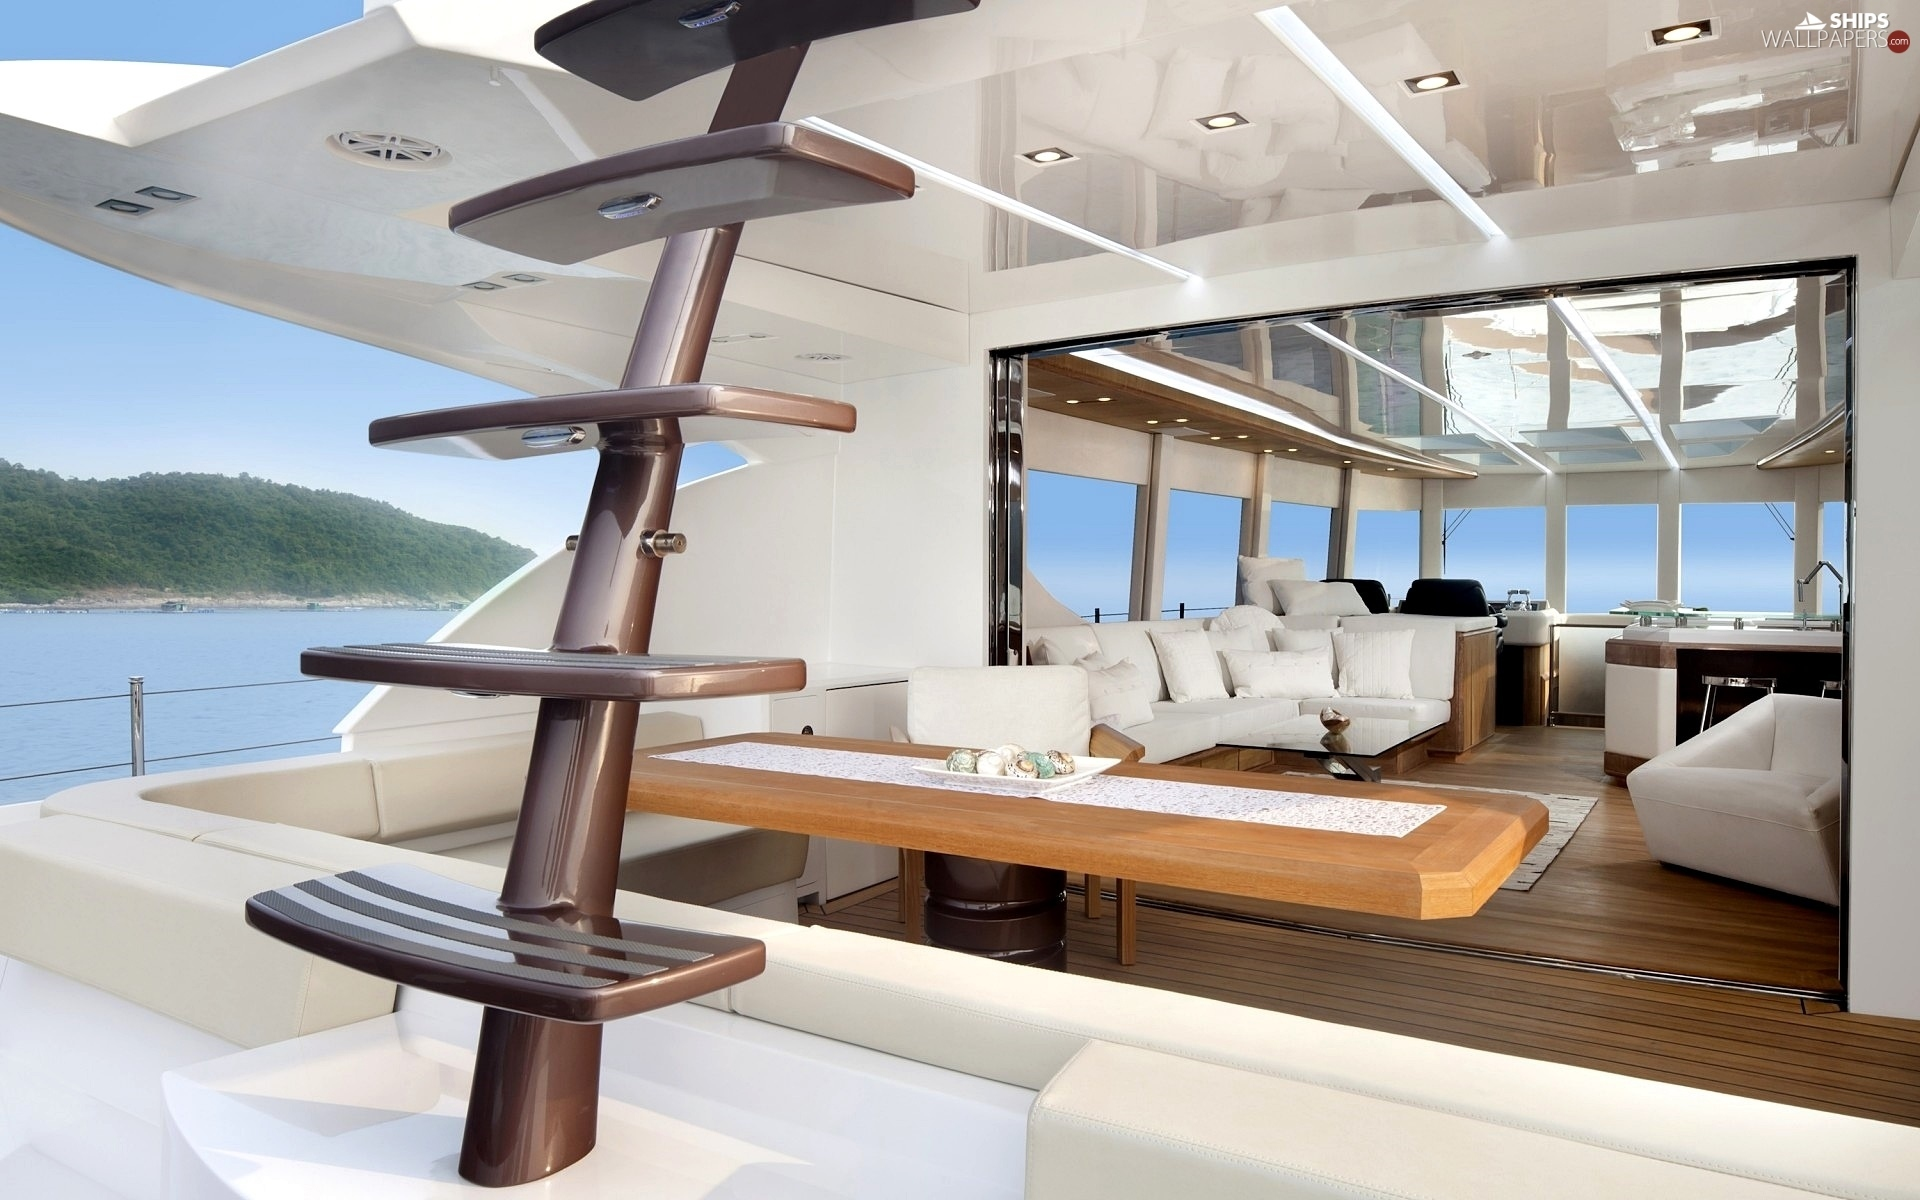 http://wejetlovers.wehomeowners.com/wp-content/uploads/2016/07/Yacht-Photo_001.jpg